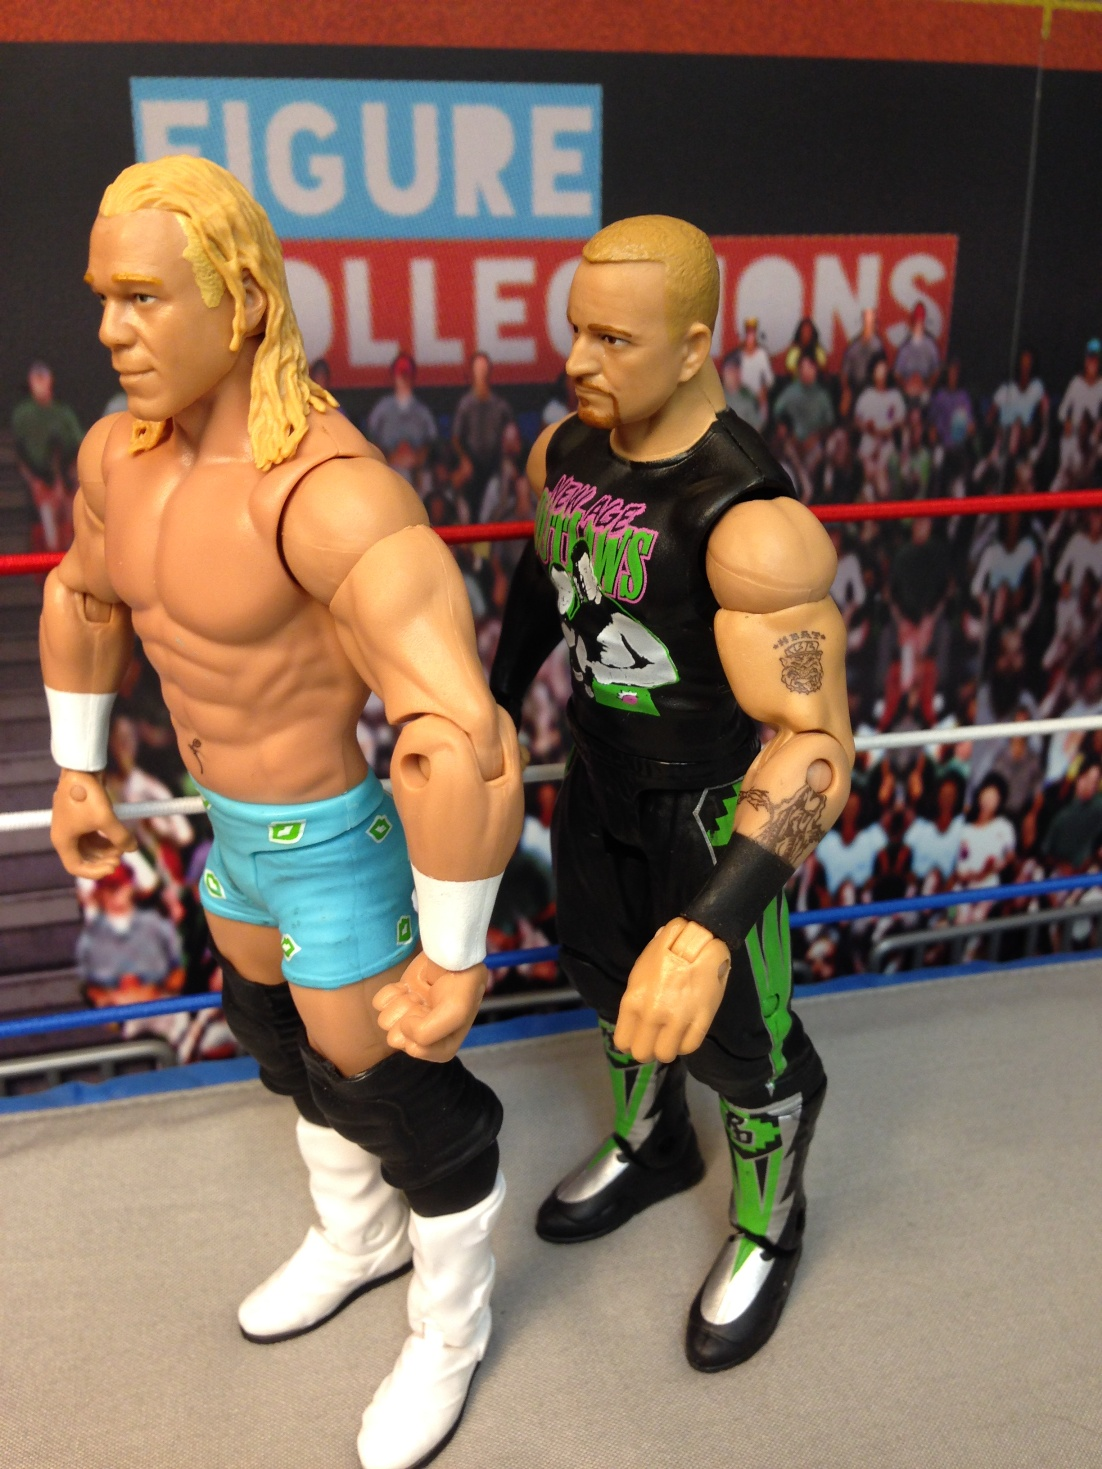 Billy Gunn and Road Dogg